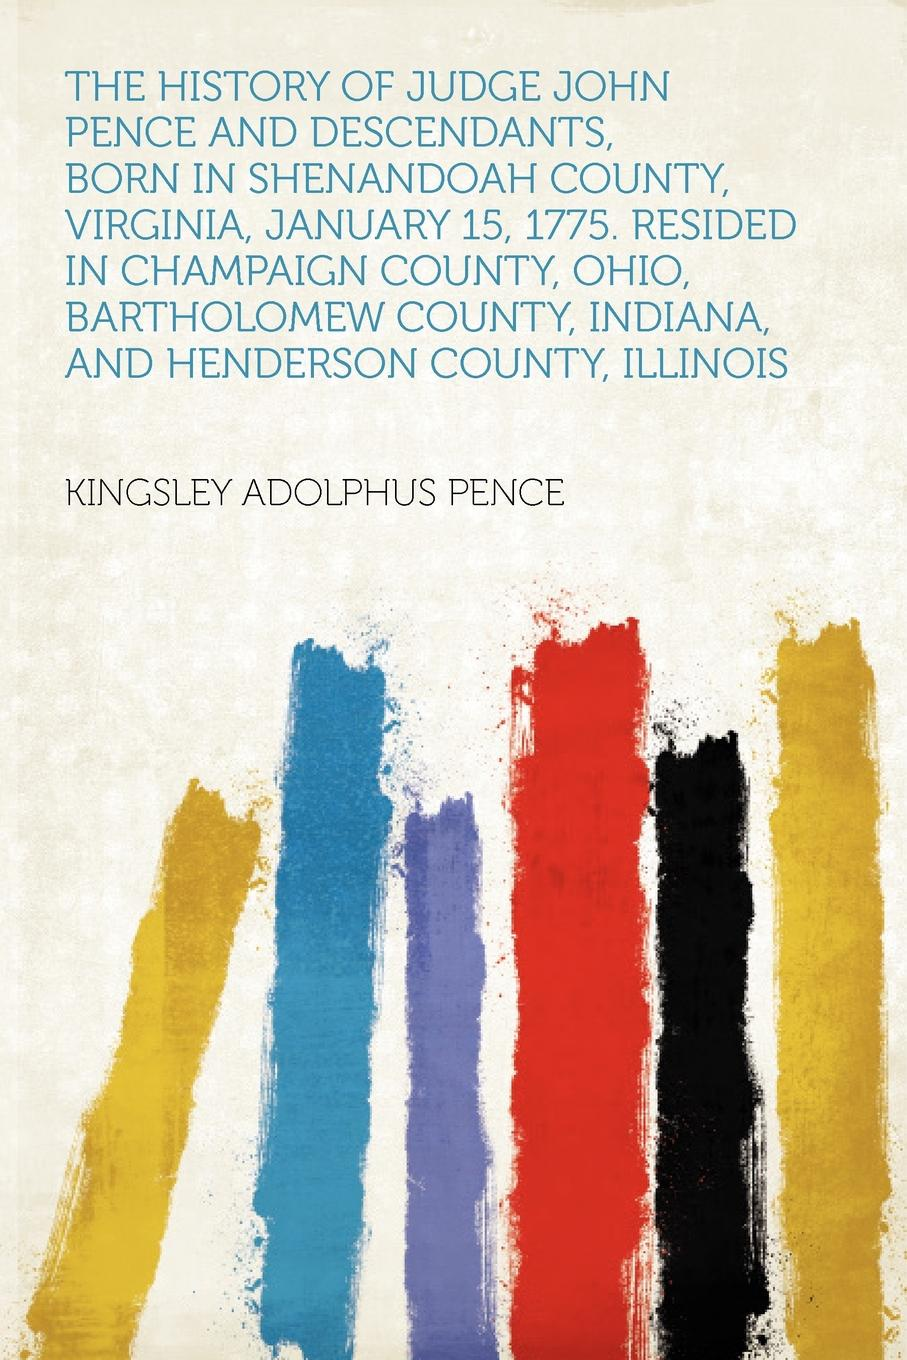 The History of Judge John Pence and Descendants, Born in Shenandoah County, Virginia, January 15, 1775. Resided in Champaign County, Ohio, Bartholomew County, Indiana, and Henderson County, Illinois